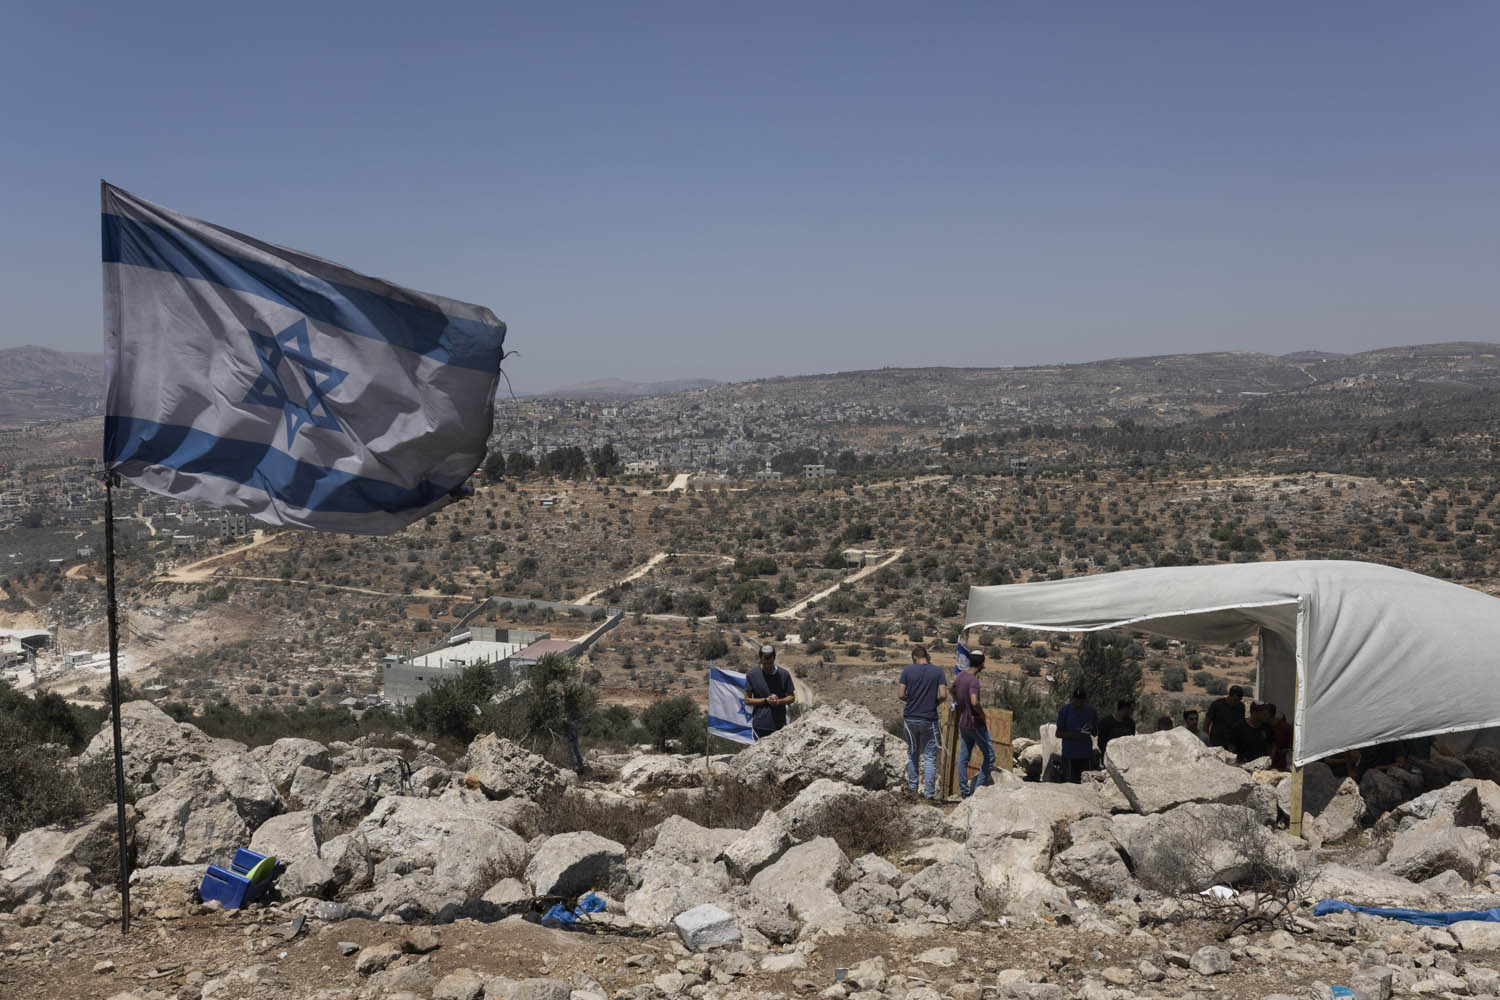 Settlers in the outpost Eviatar overlook the area near the Palestinian town of Beita, northern West Bank, June 28, 2021. (Oren Ziv)